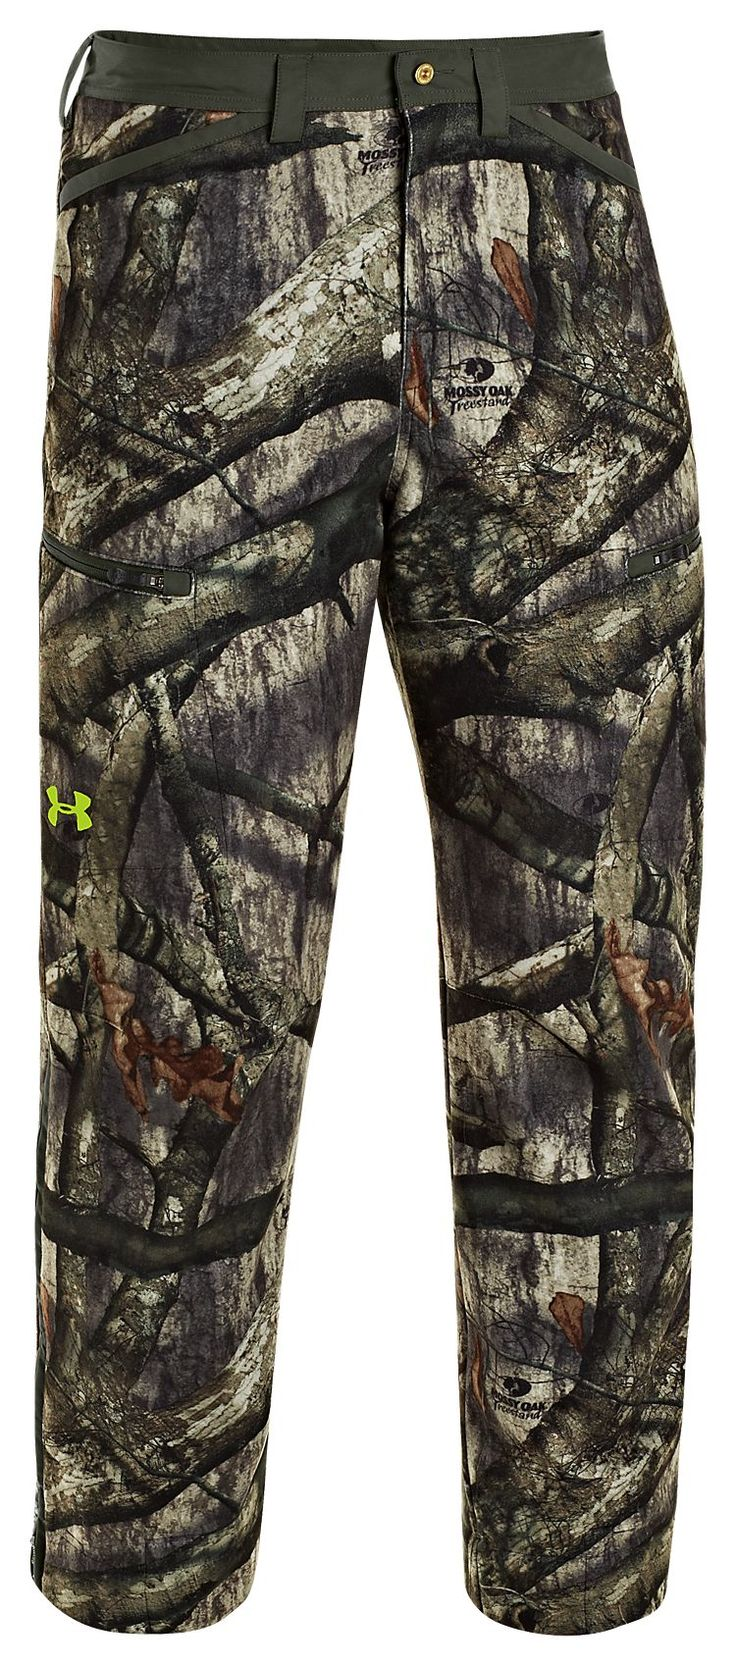 Under Armour® ColdGear® Infrared Scent Control Rut Pants for Men   Bass Pro Shops - $160 Mossy Oak Treestand